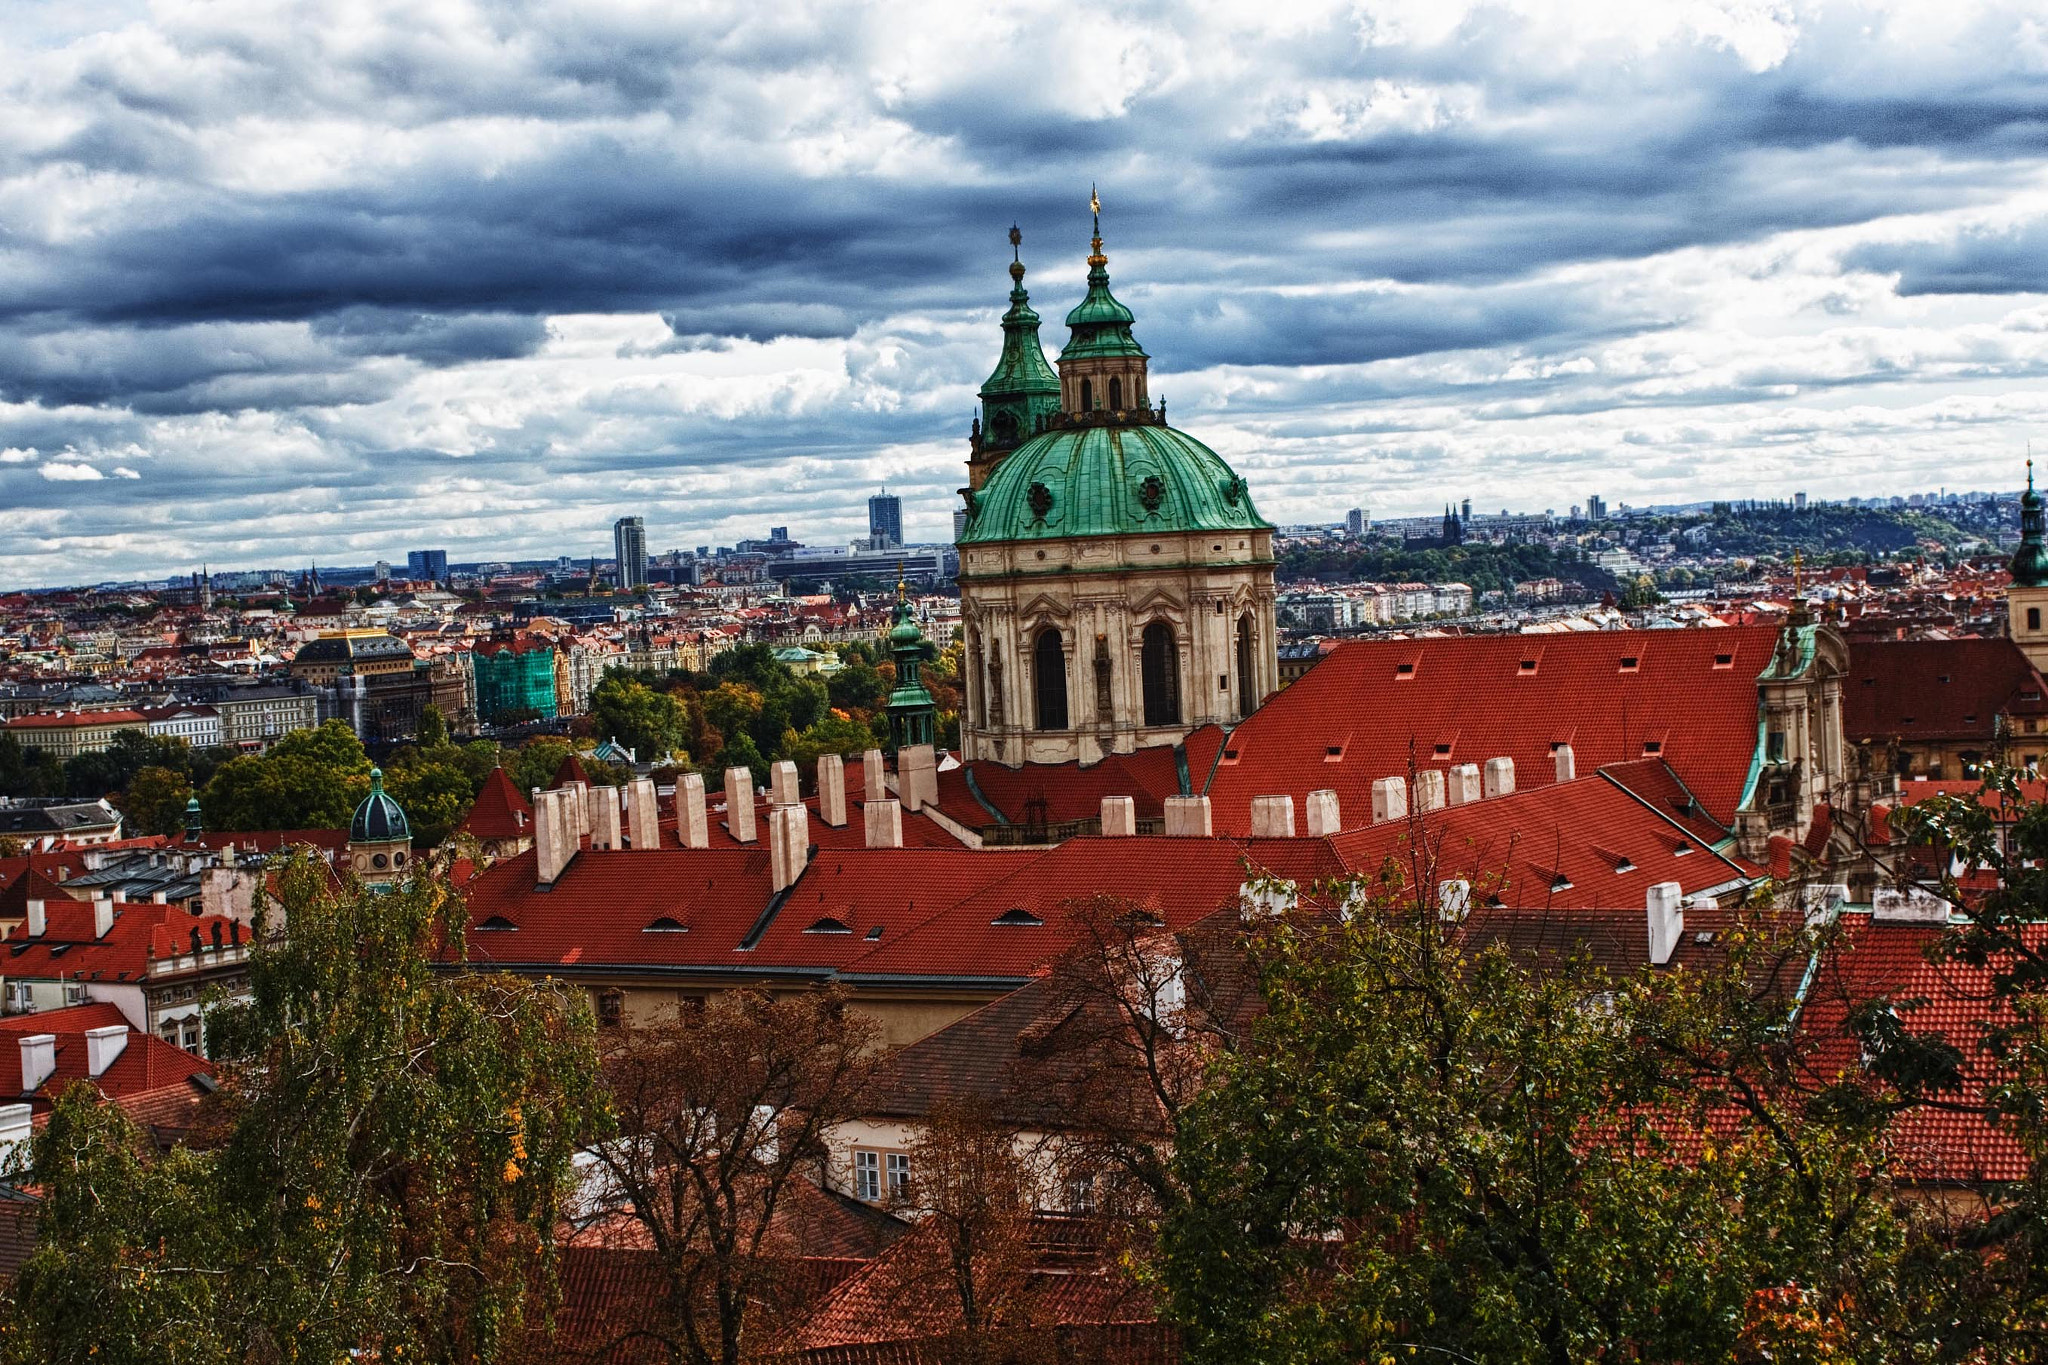 Photograph More from Prague by M Delawer on 500px